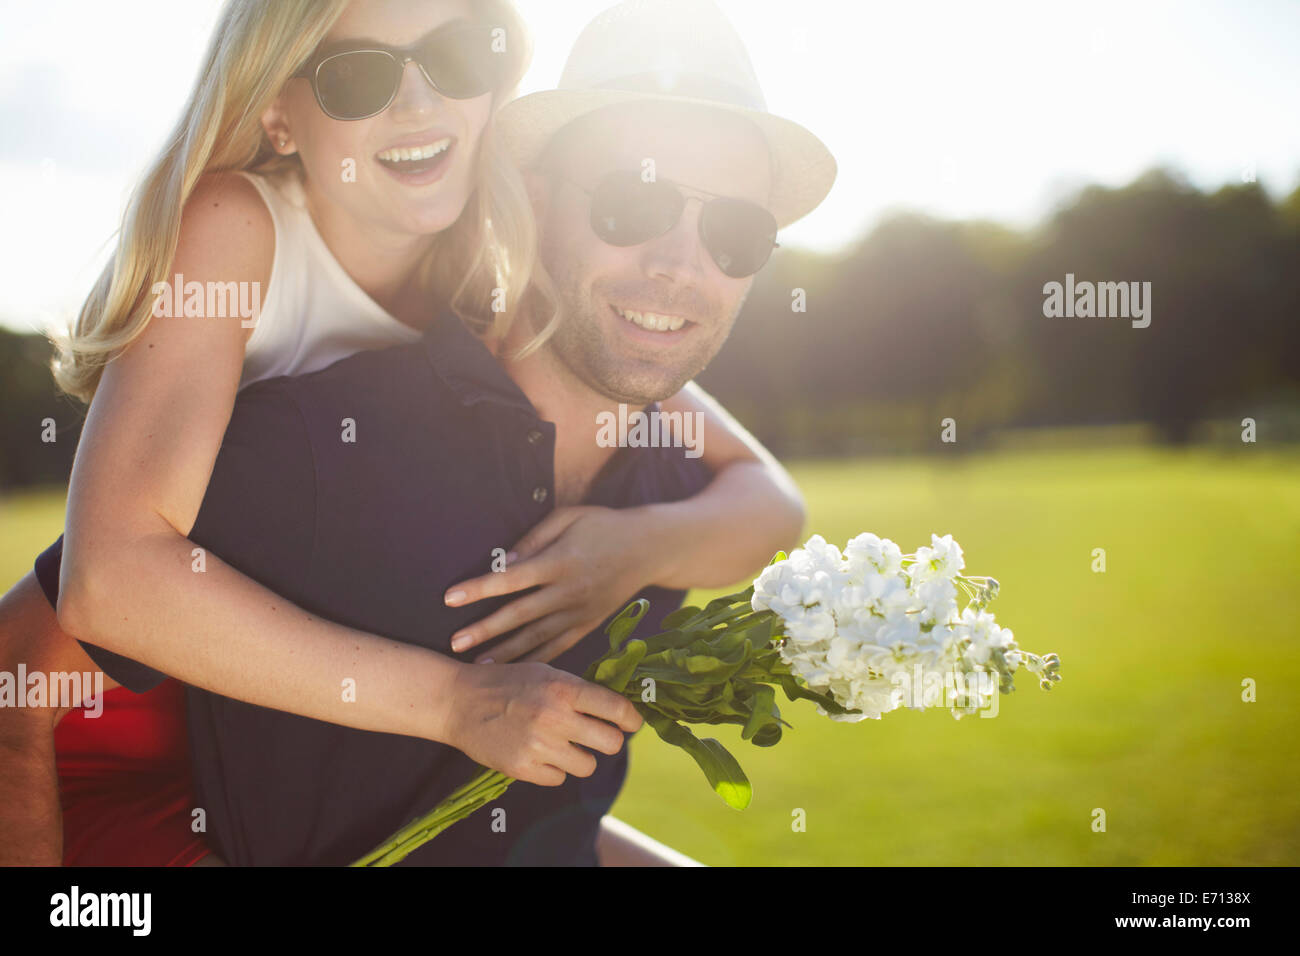 Young woman with flowers getting piggy back from boyfriend in park - Stock Image